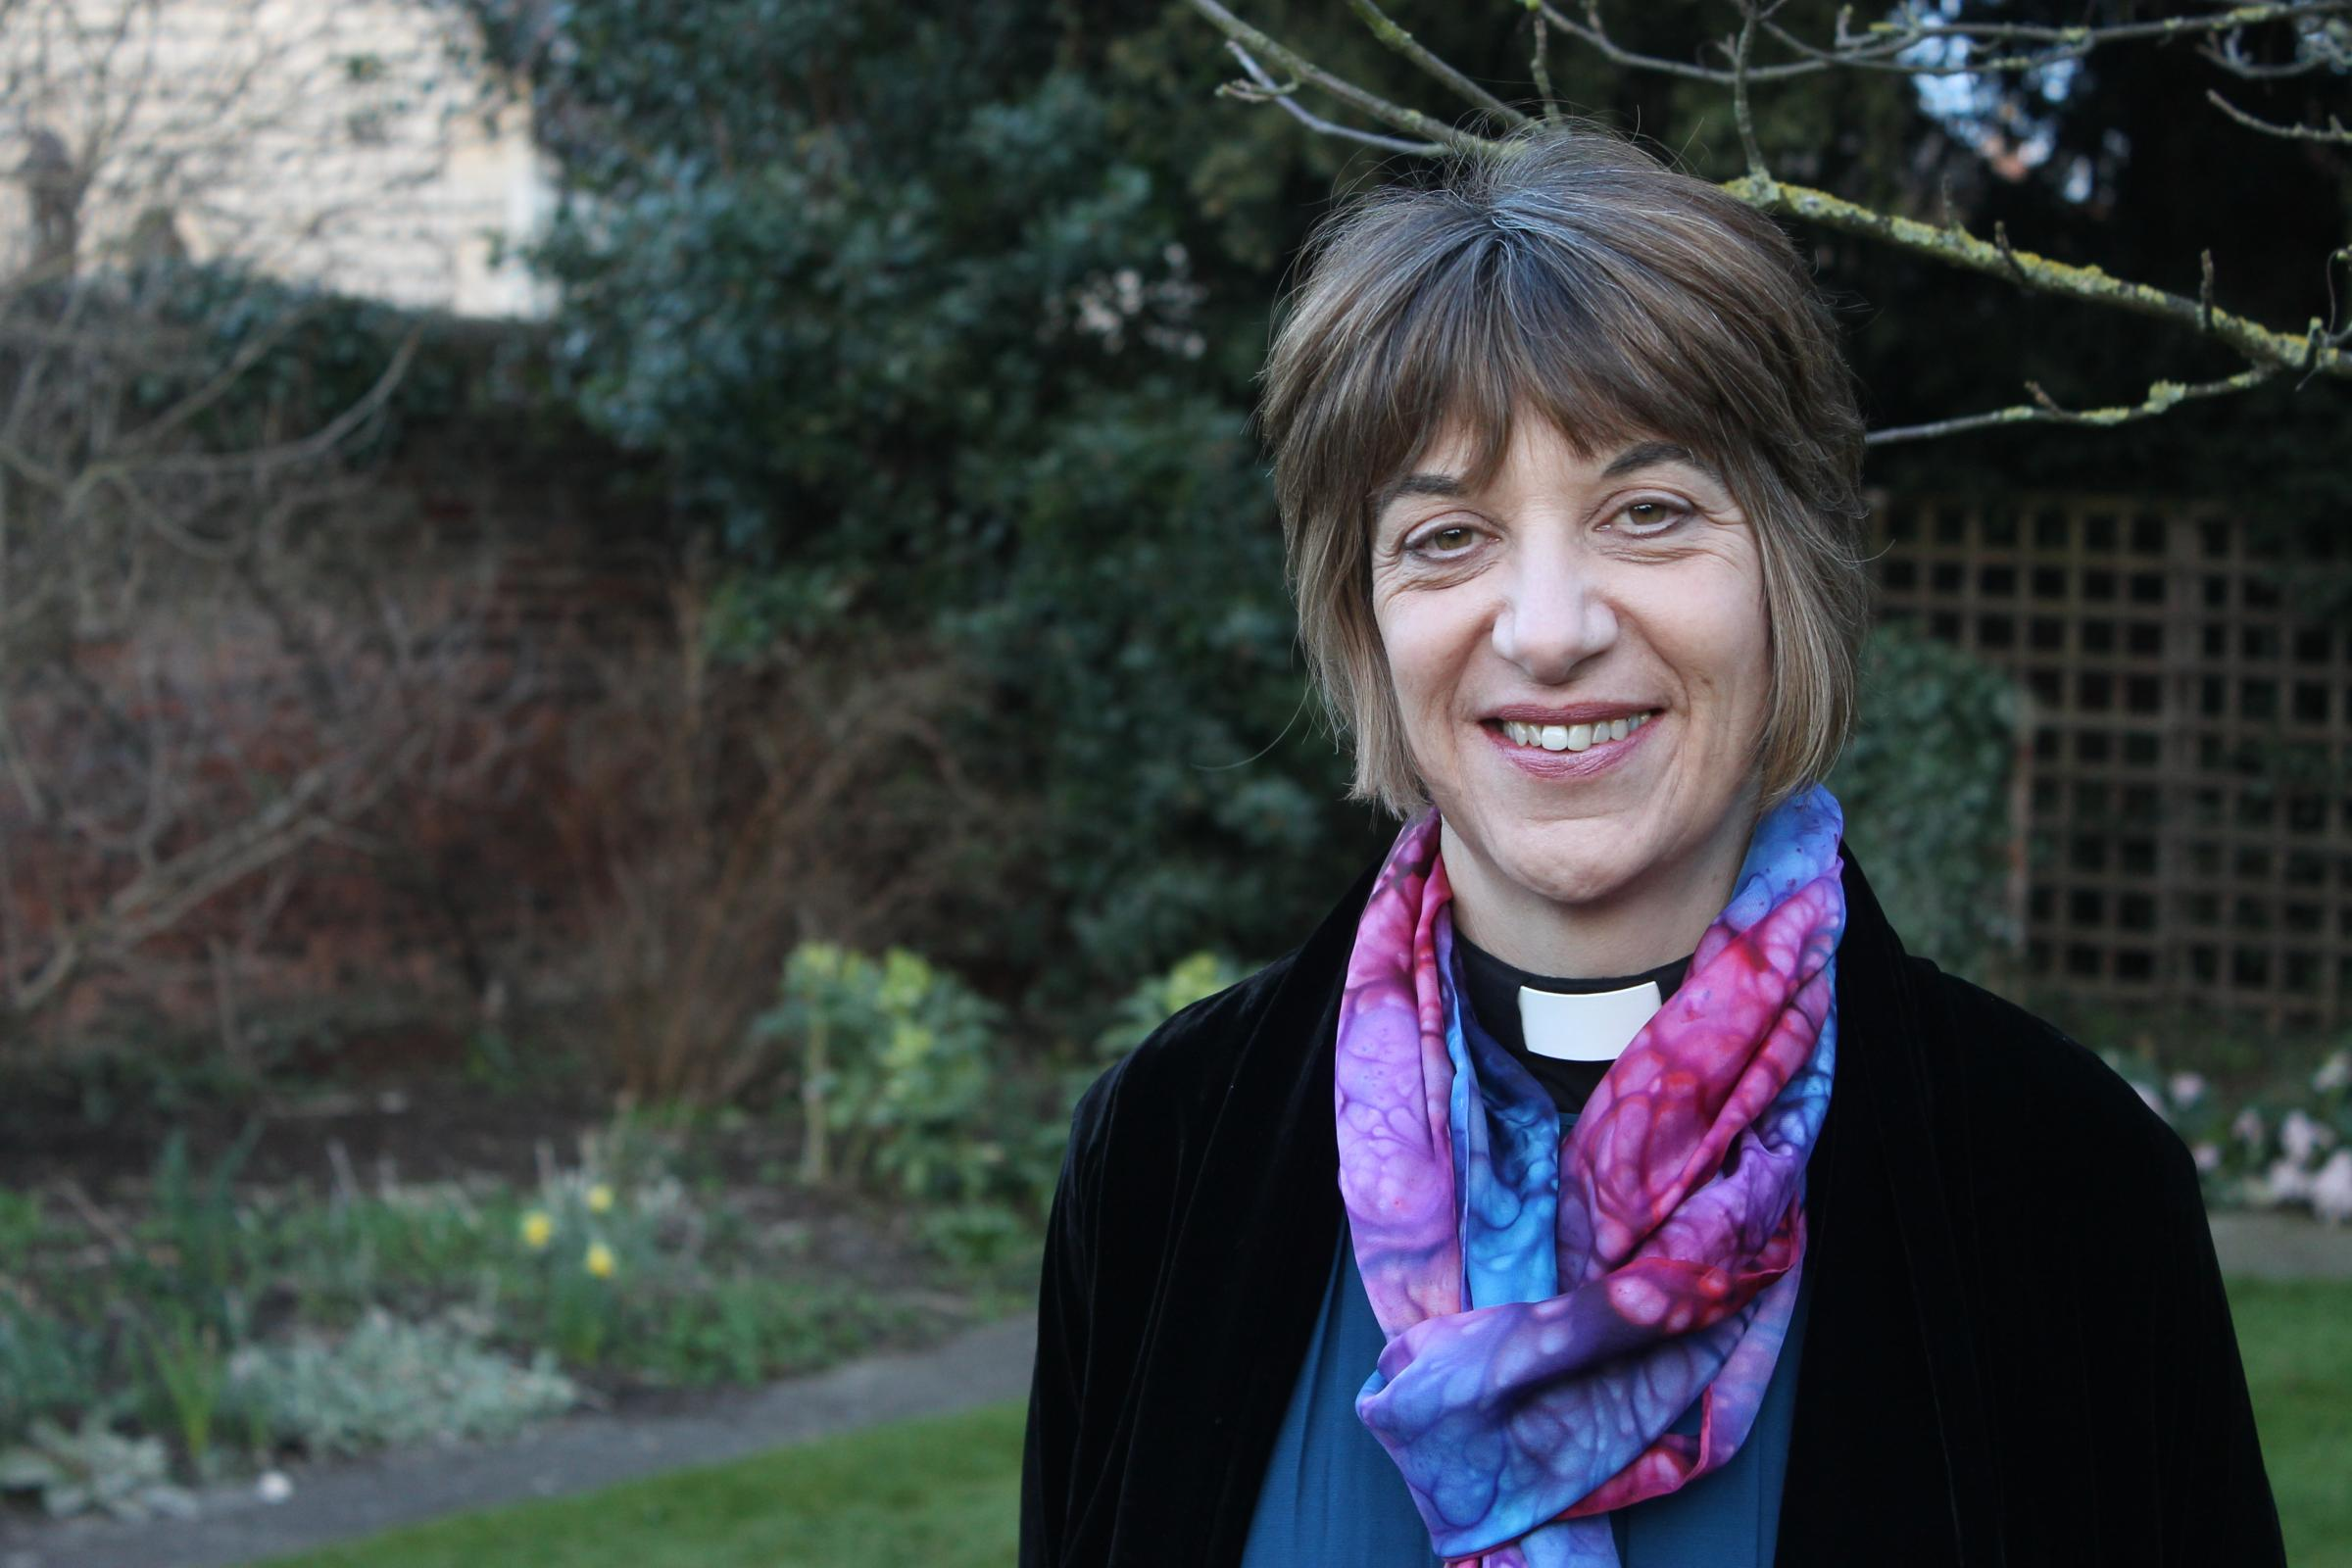 Rachel Treweek will become the first woman in the Church of England to be consecrated as a diocesan bishop when she officially takes the helm in Gloucestershire on Wednesday